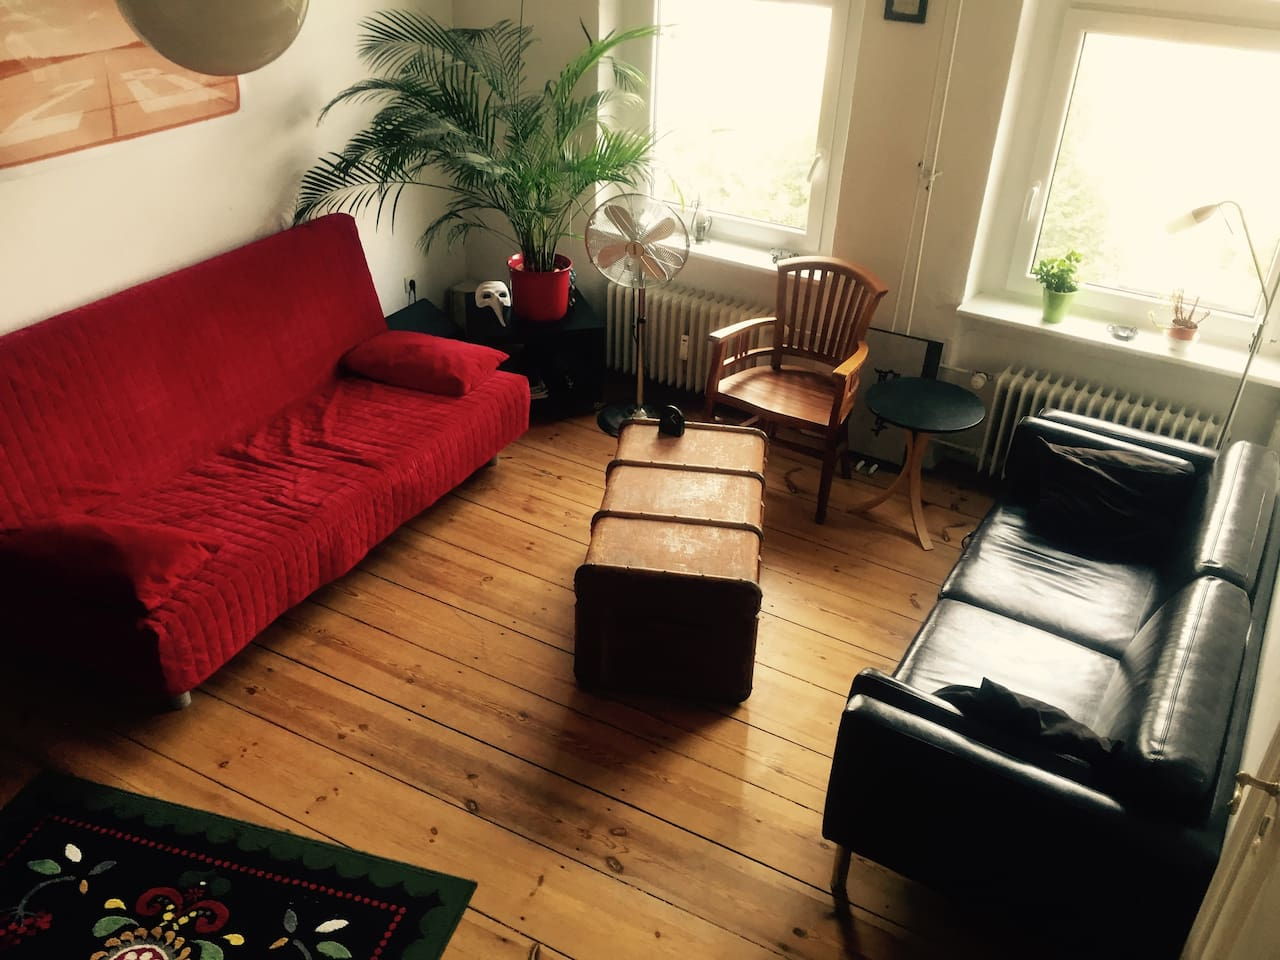 Big and light living room, wooden floor, the red sofa can be a bed for two people